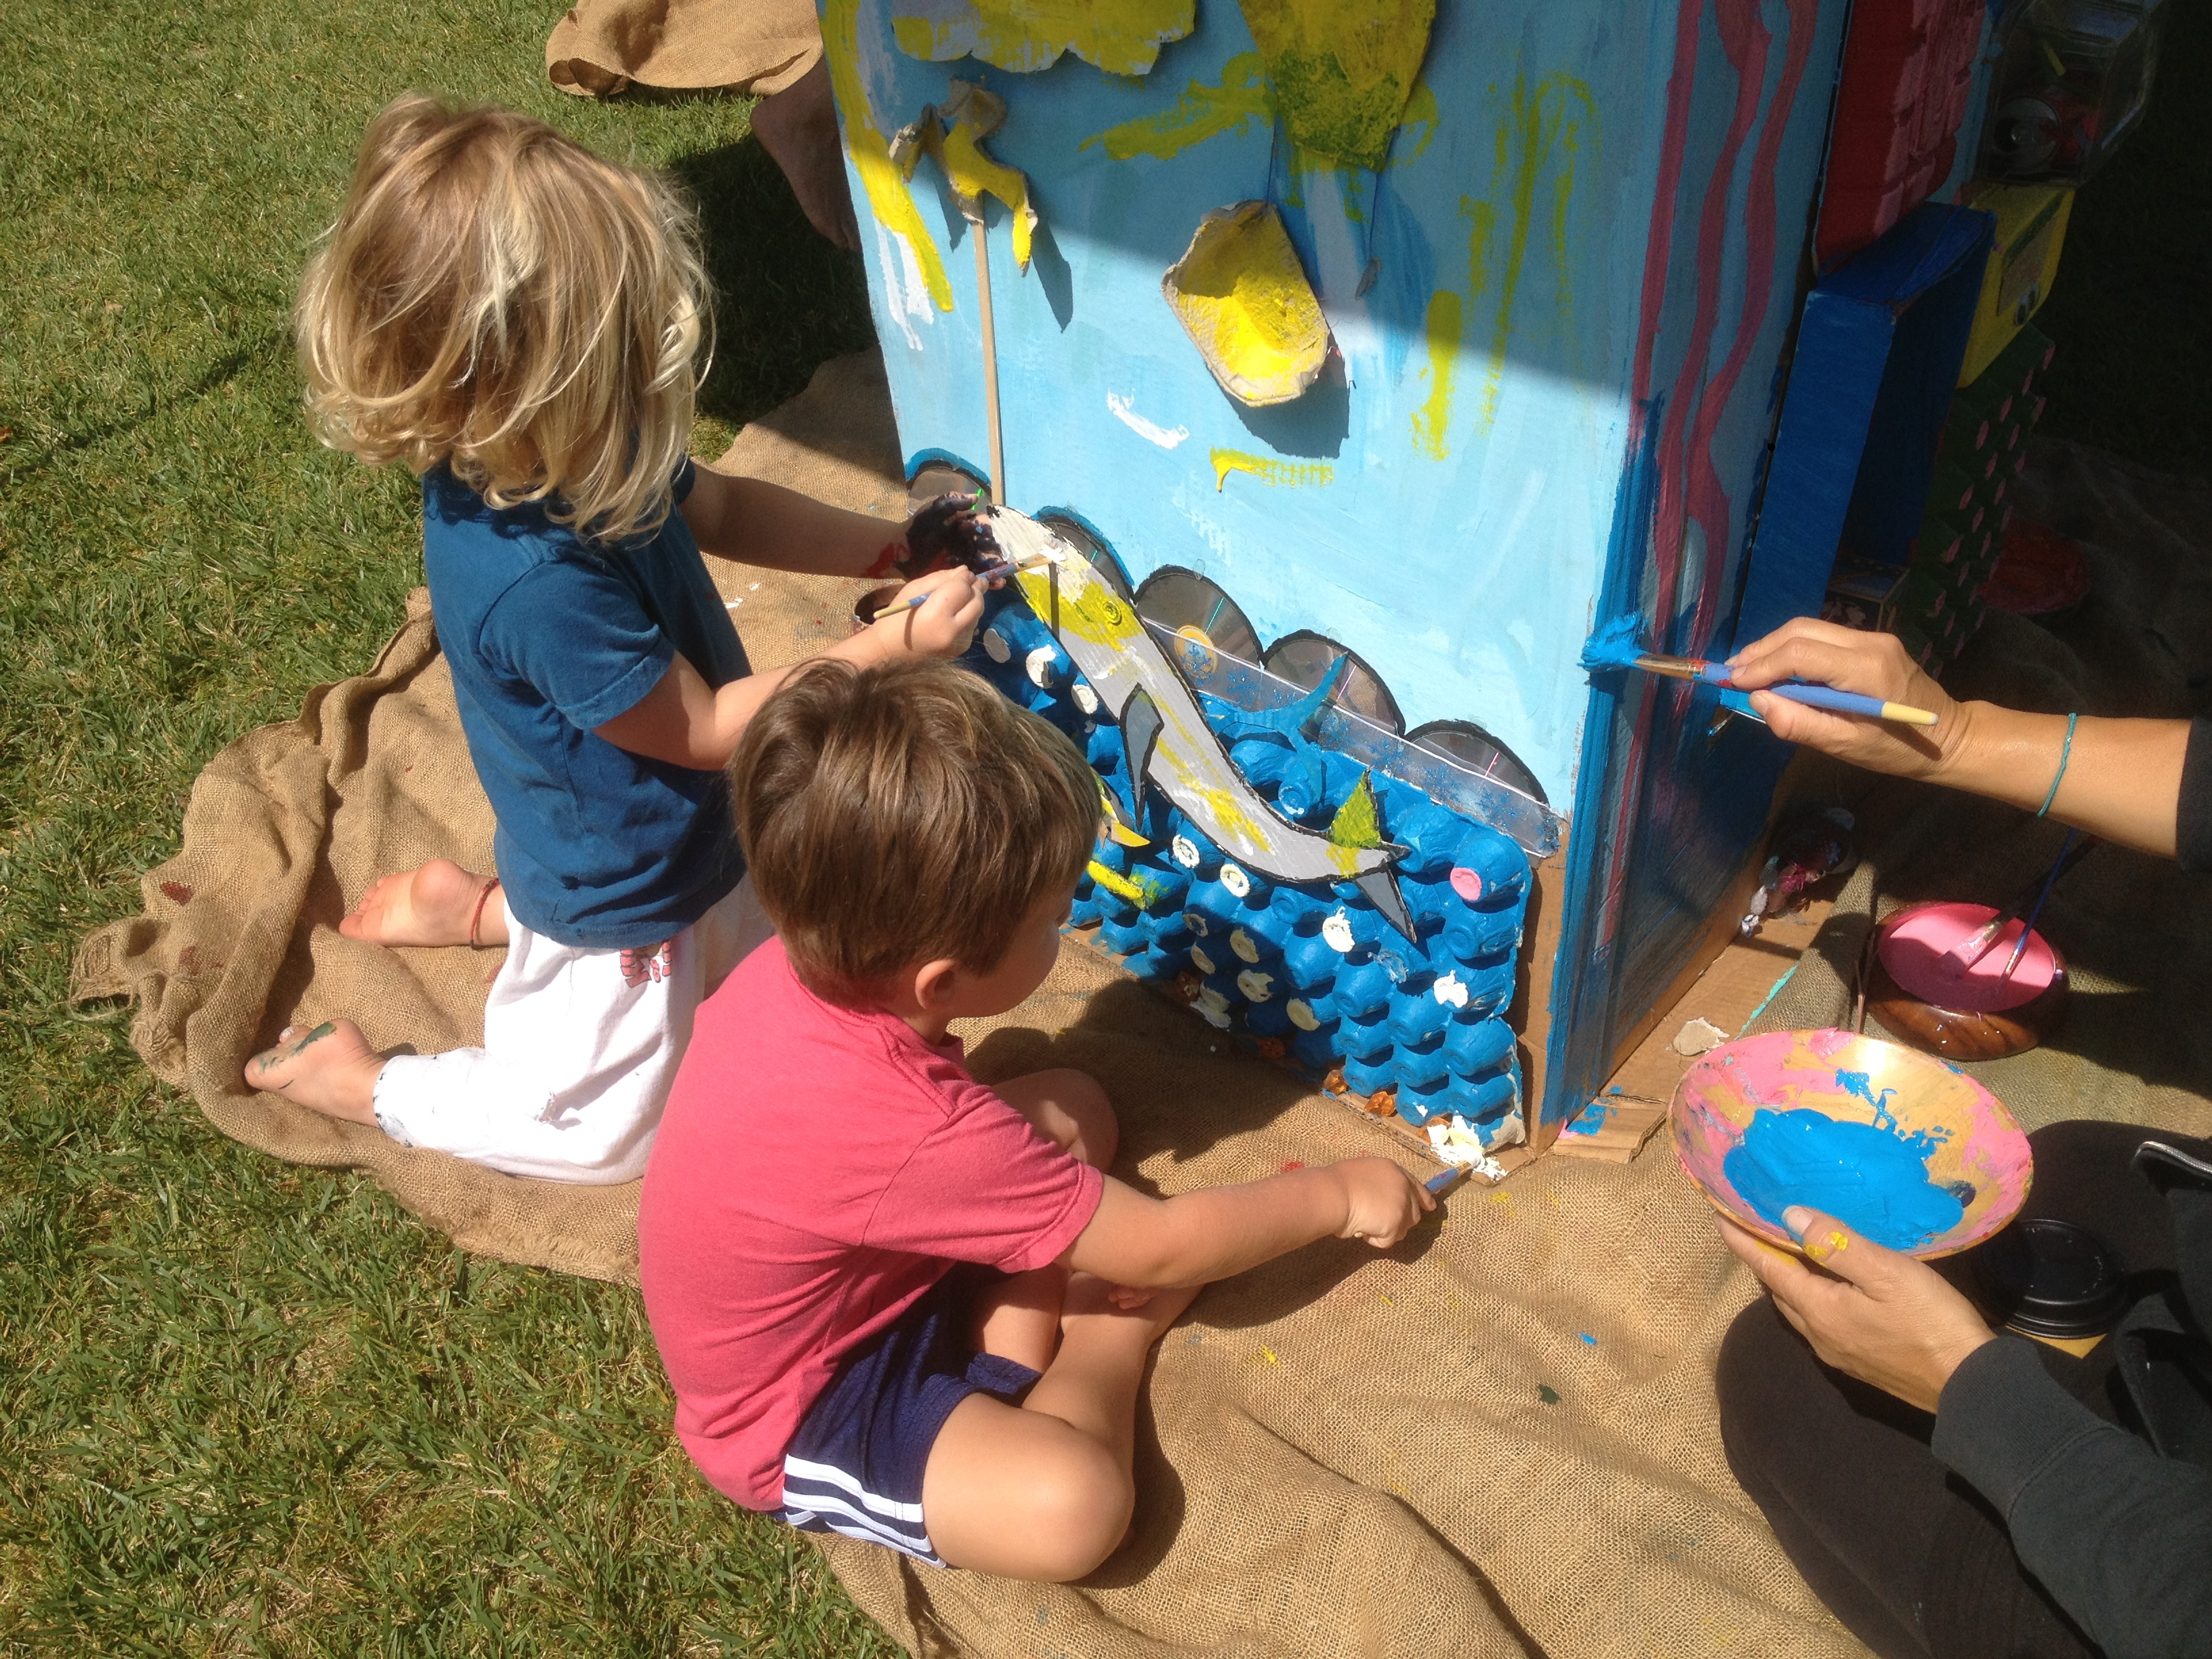 Toddler Paint Non-toxic, Eco-friendly Paints Safer children's Finger Paint